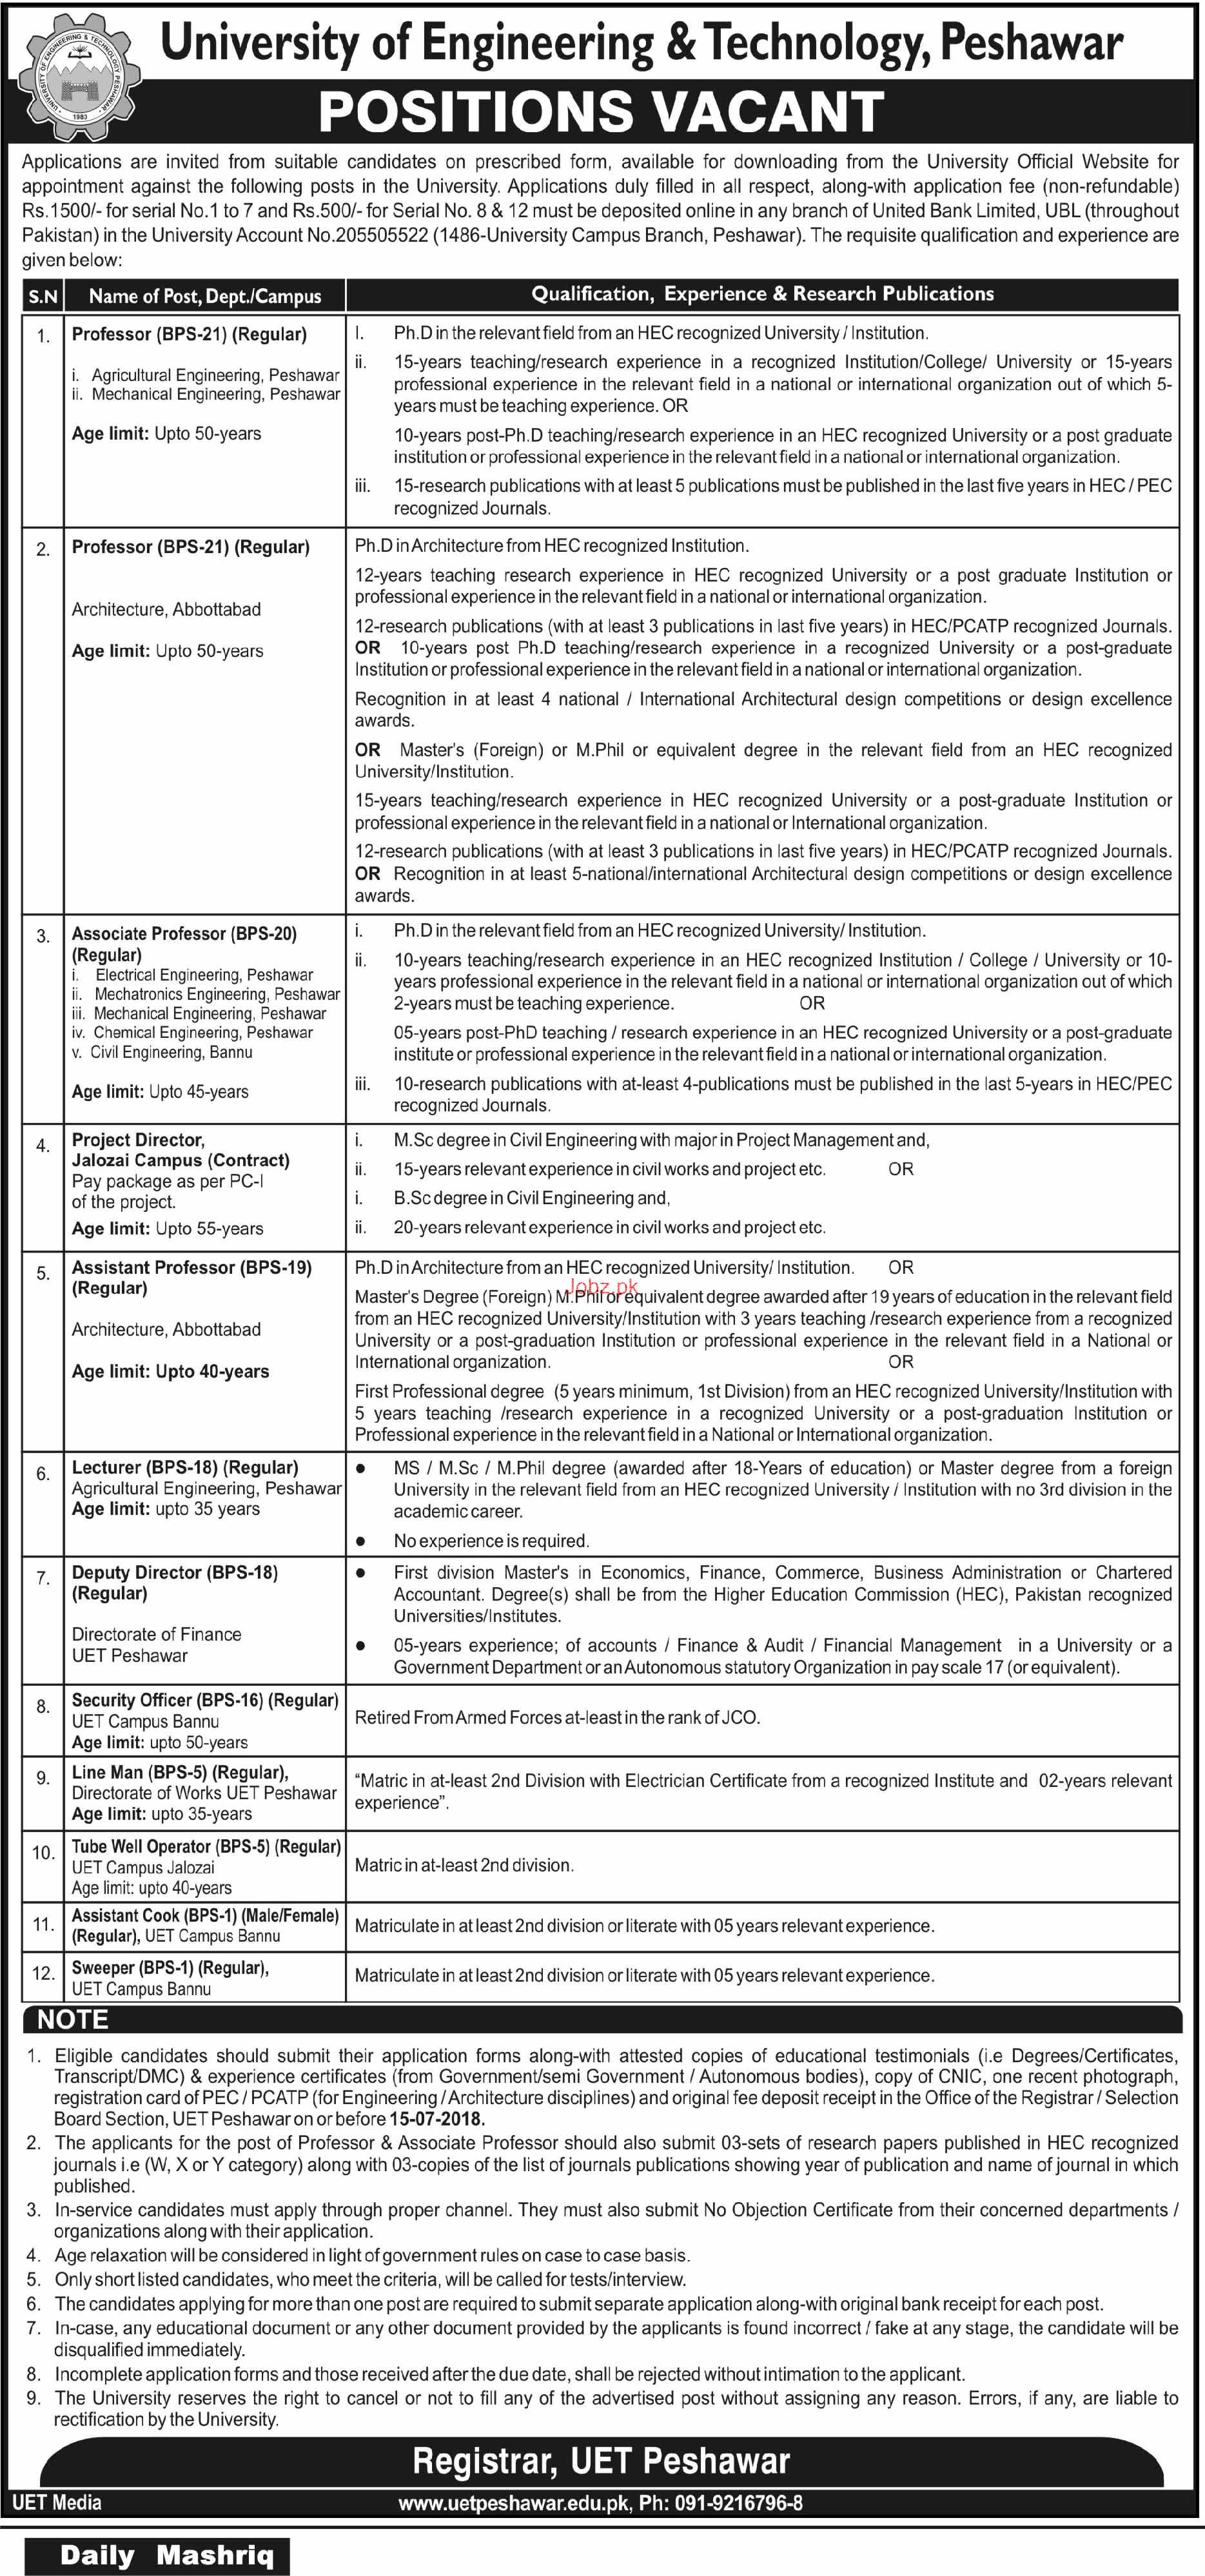 University of Engineering and Technology UET Peshawar Jobs